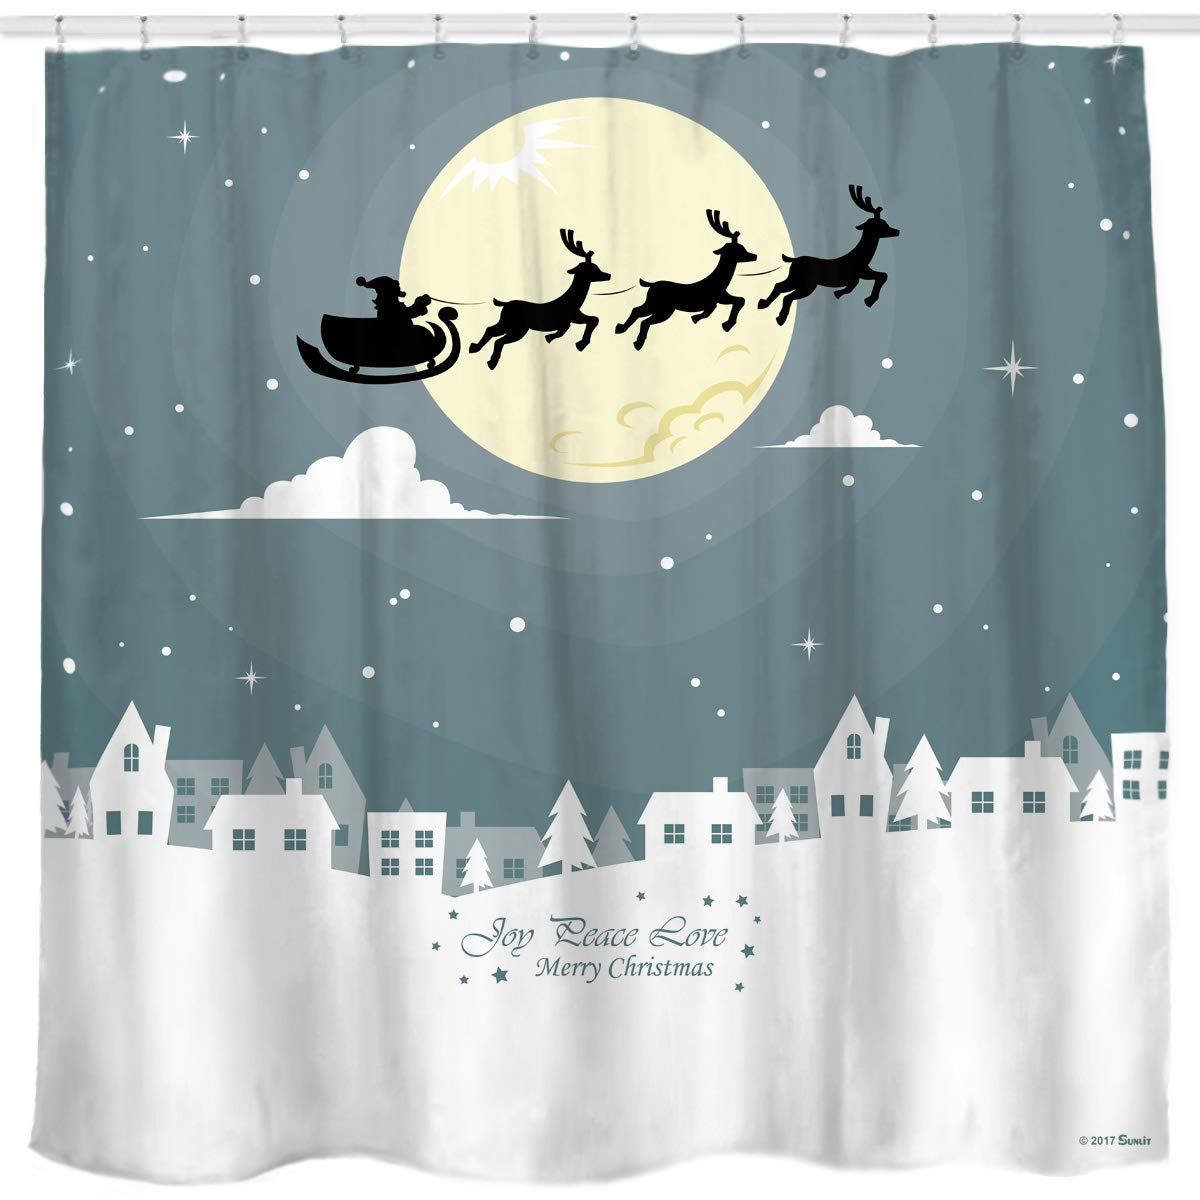 Sunlit Custom Home Decor Christmas Decoration Background Fabric Shower Curtain Santa Sleigh Flying Reindeer Festive Bathroom Novelty for New Year White Pale Blue Printed Window Curtain